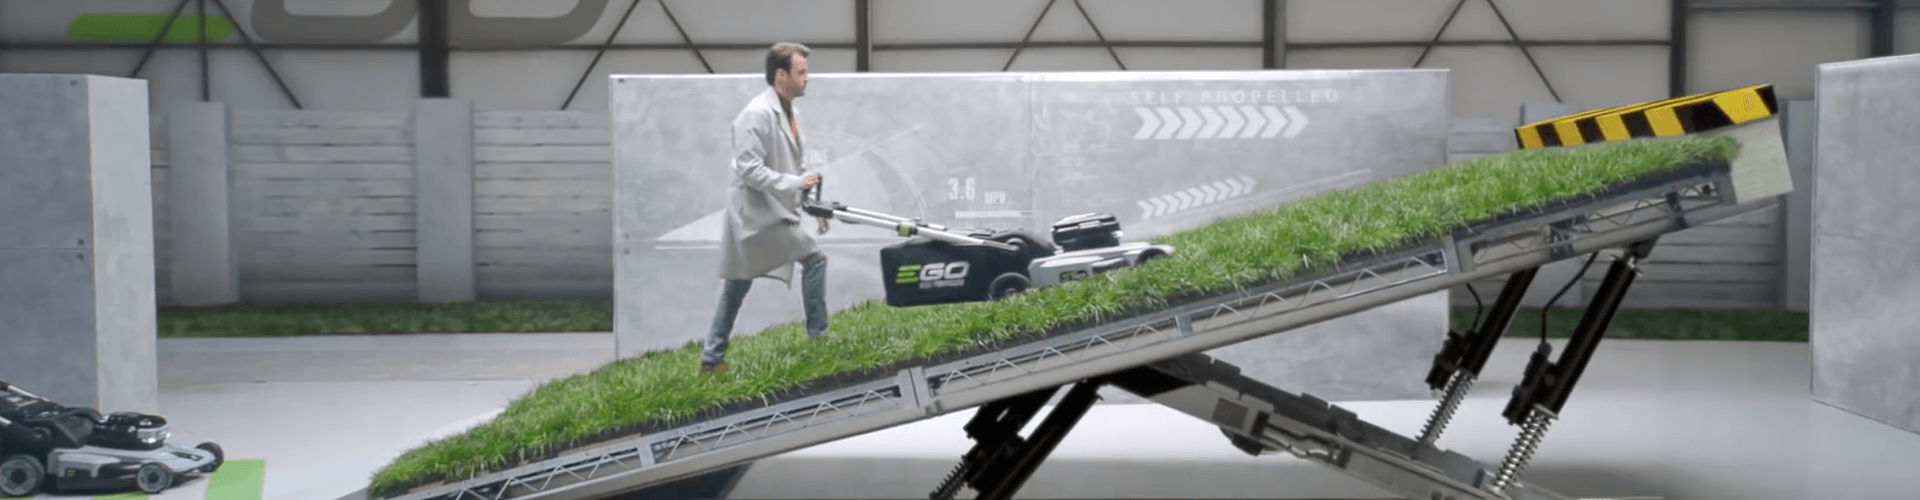 A man in a lab environment testing an EGO Mower on a steep incline.